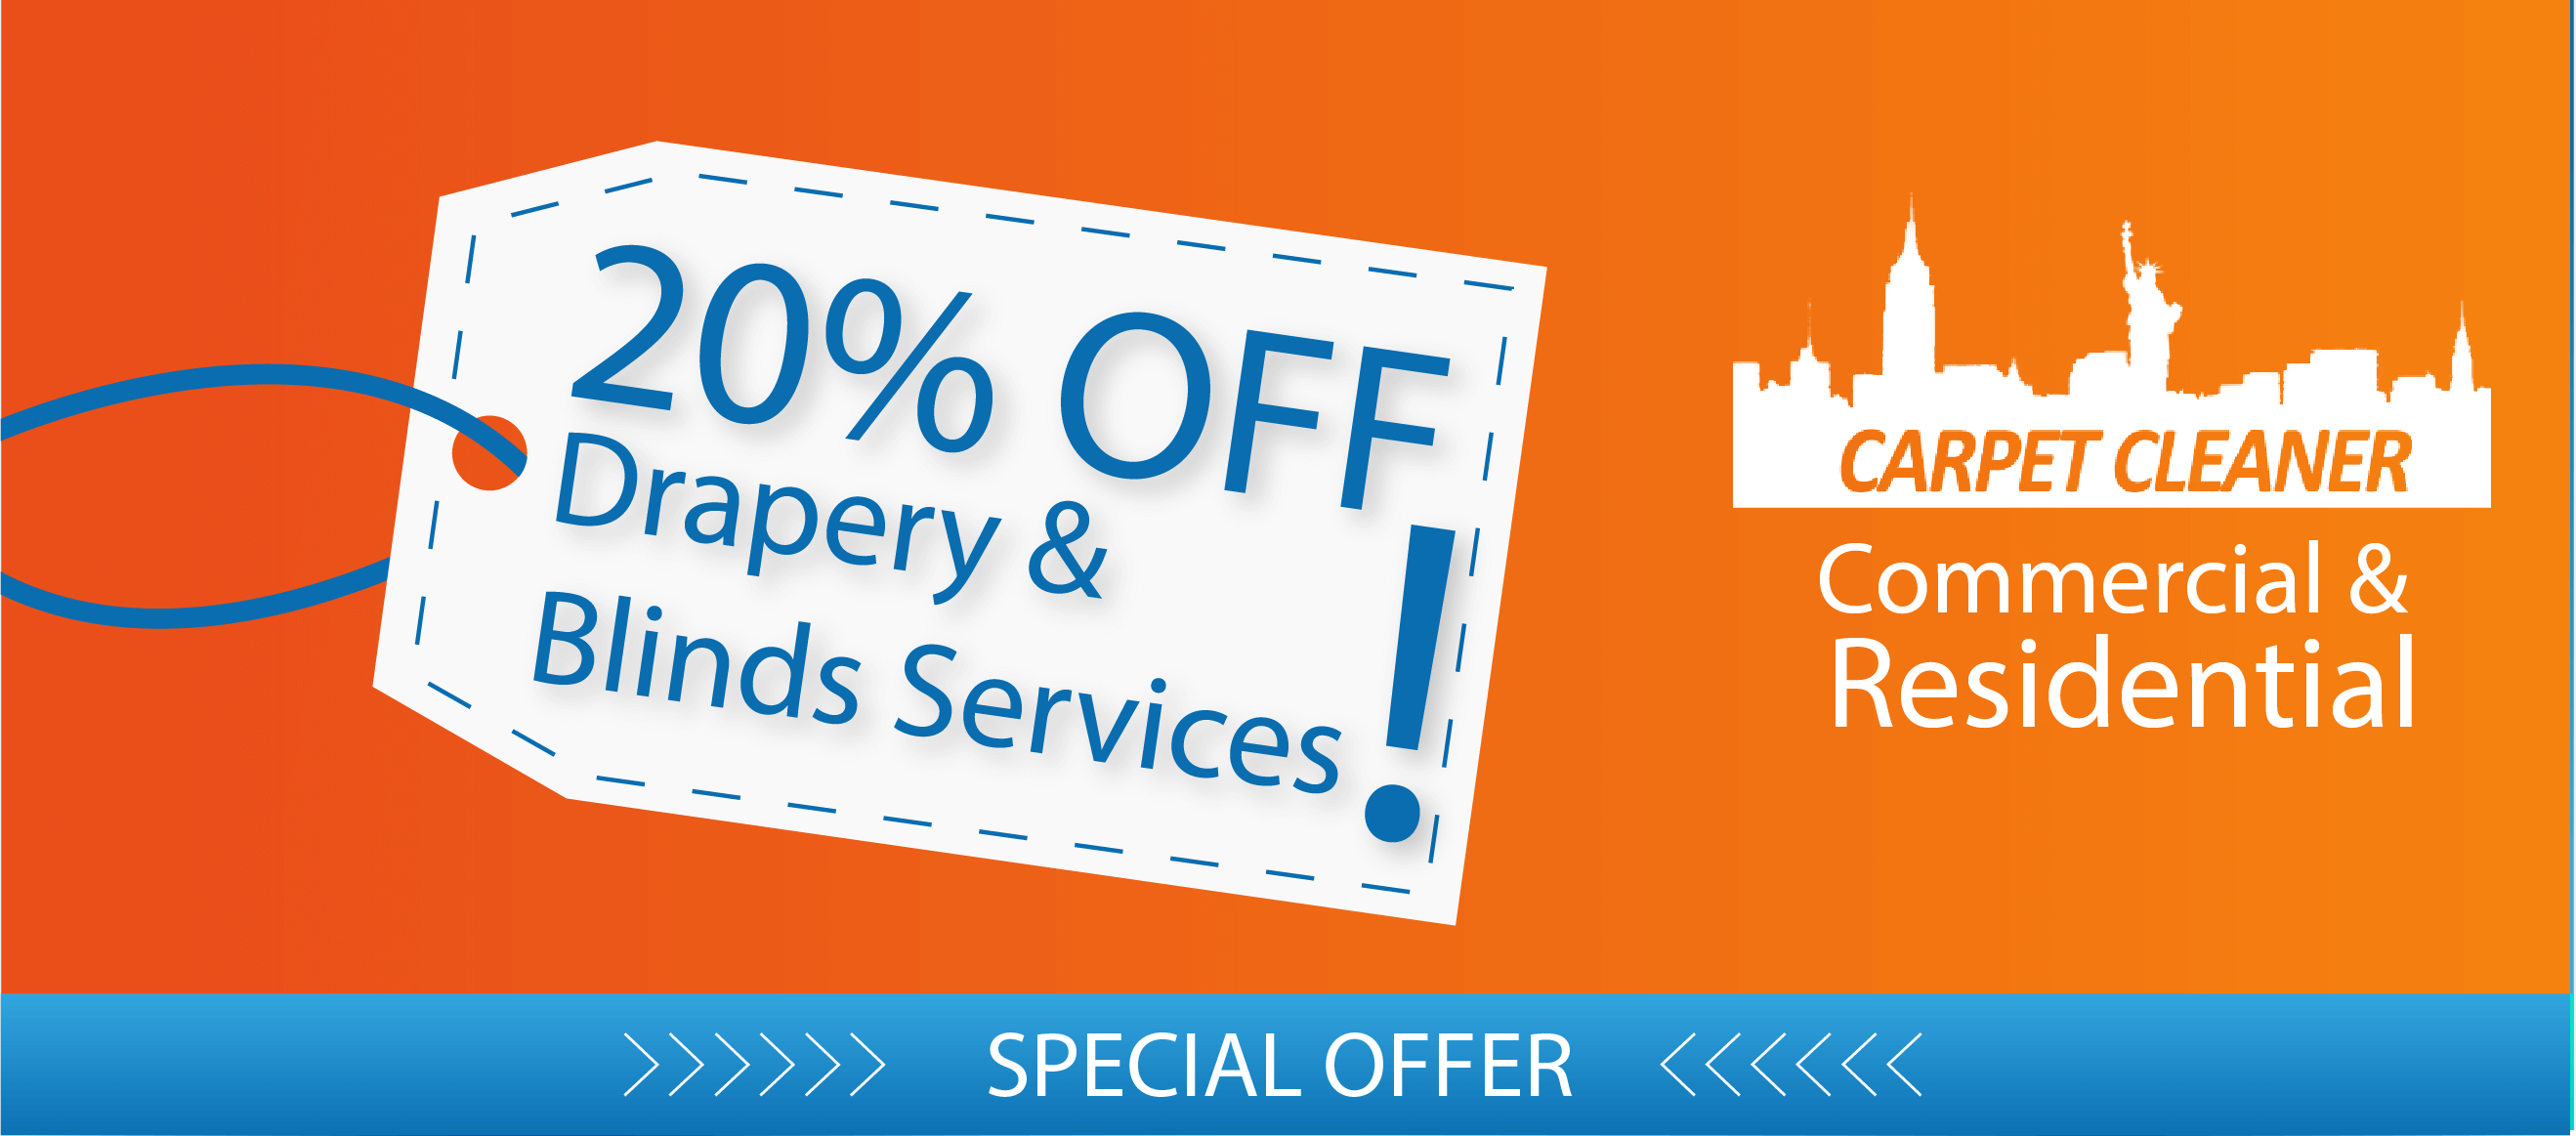 Drapery Cleaning and Blinds Treatment Services Special offer